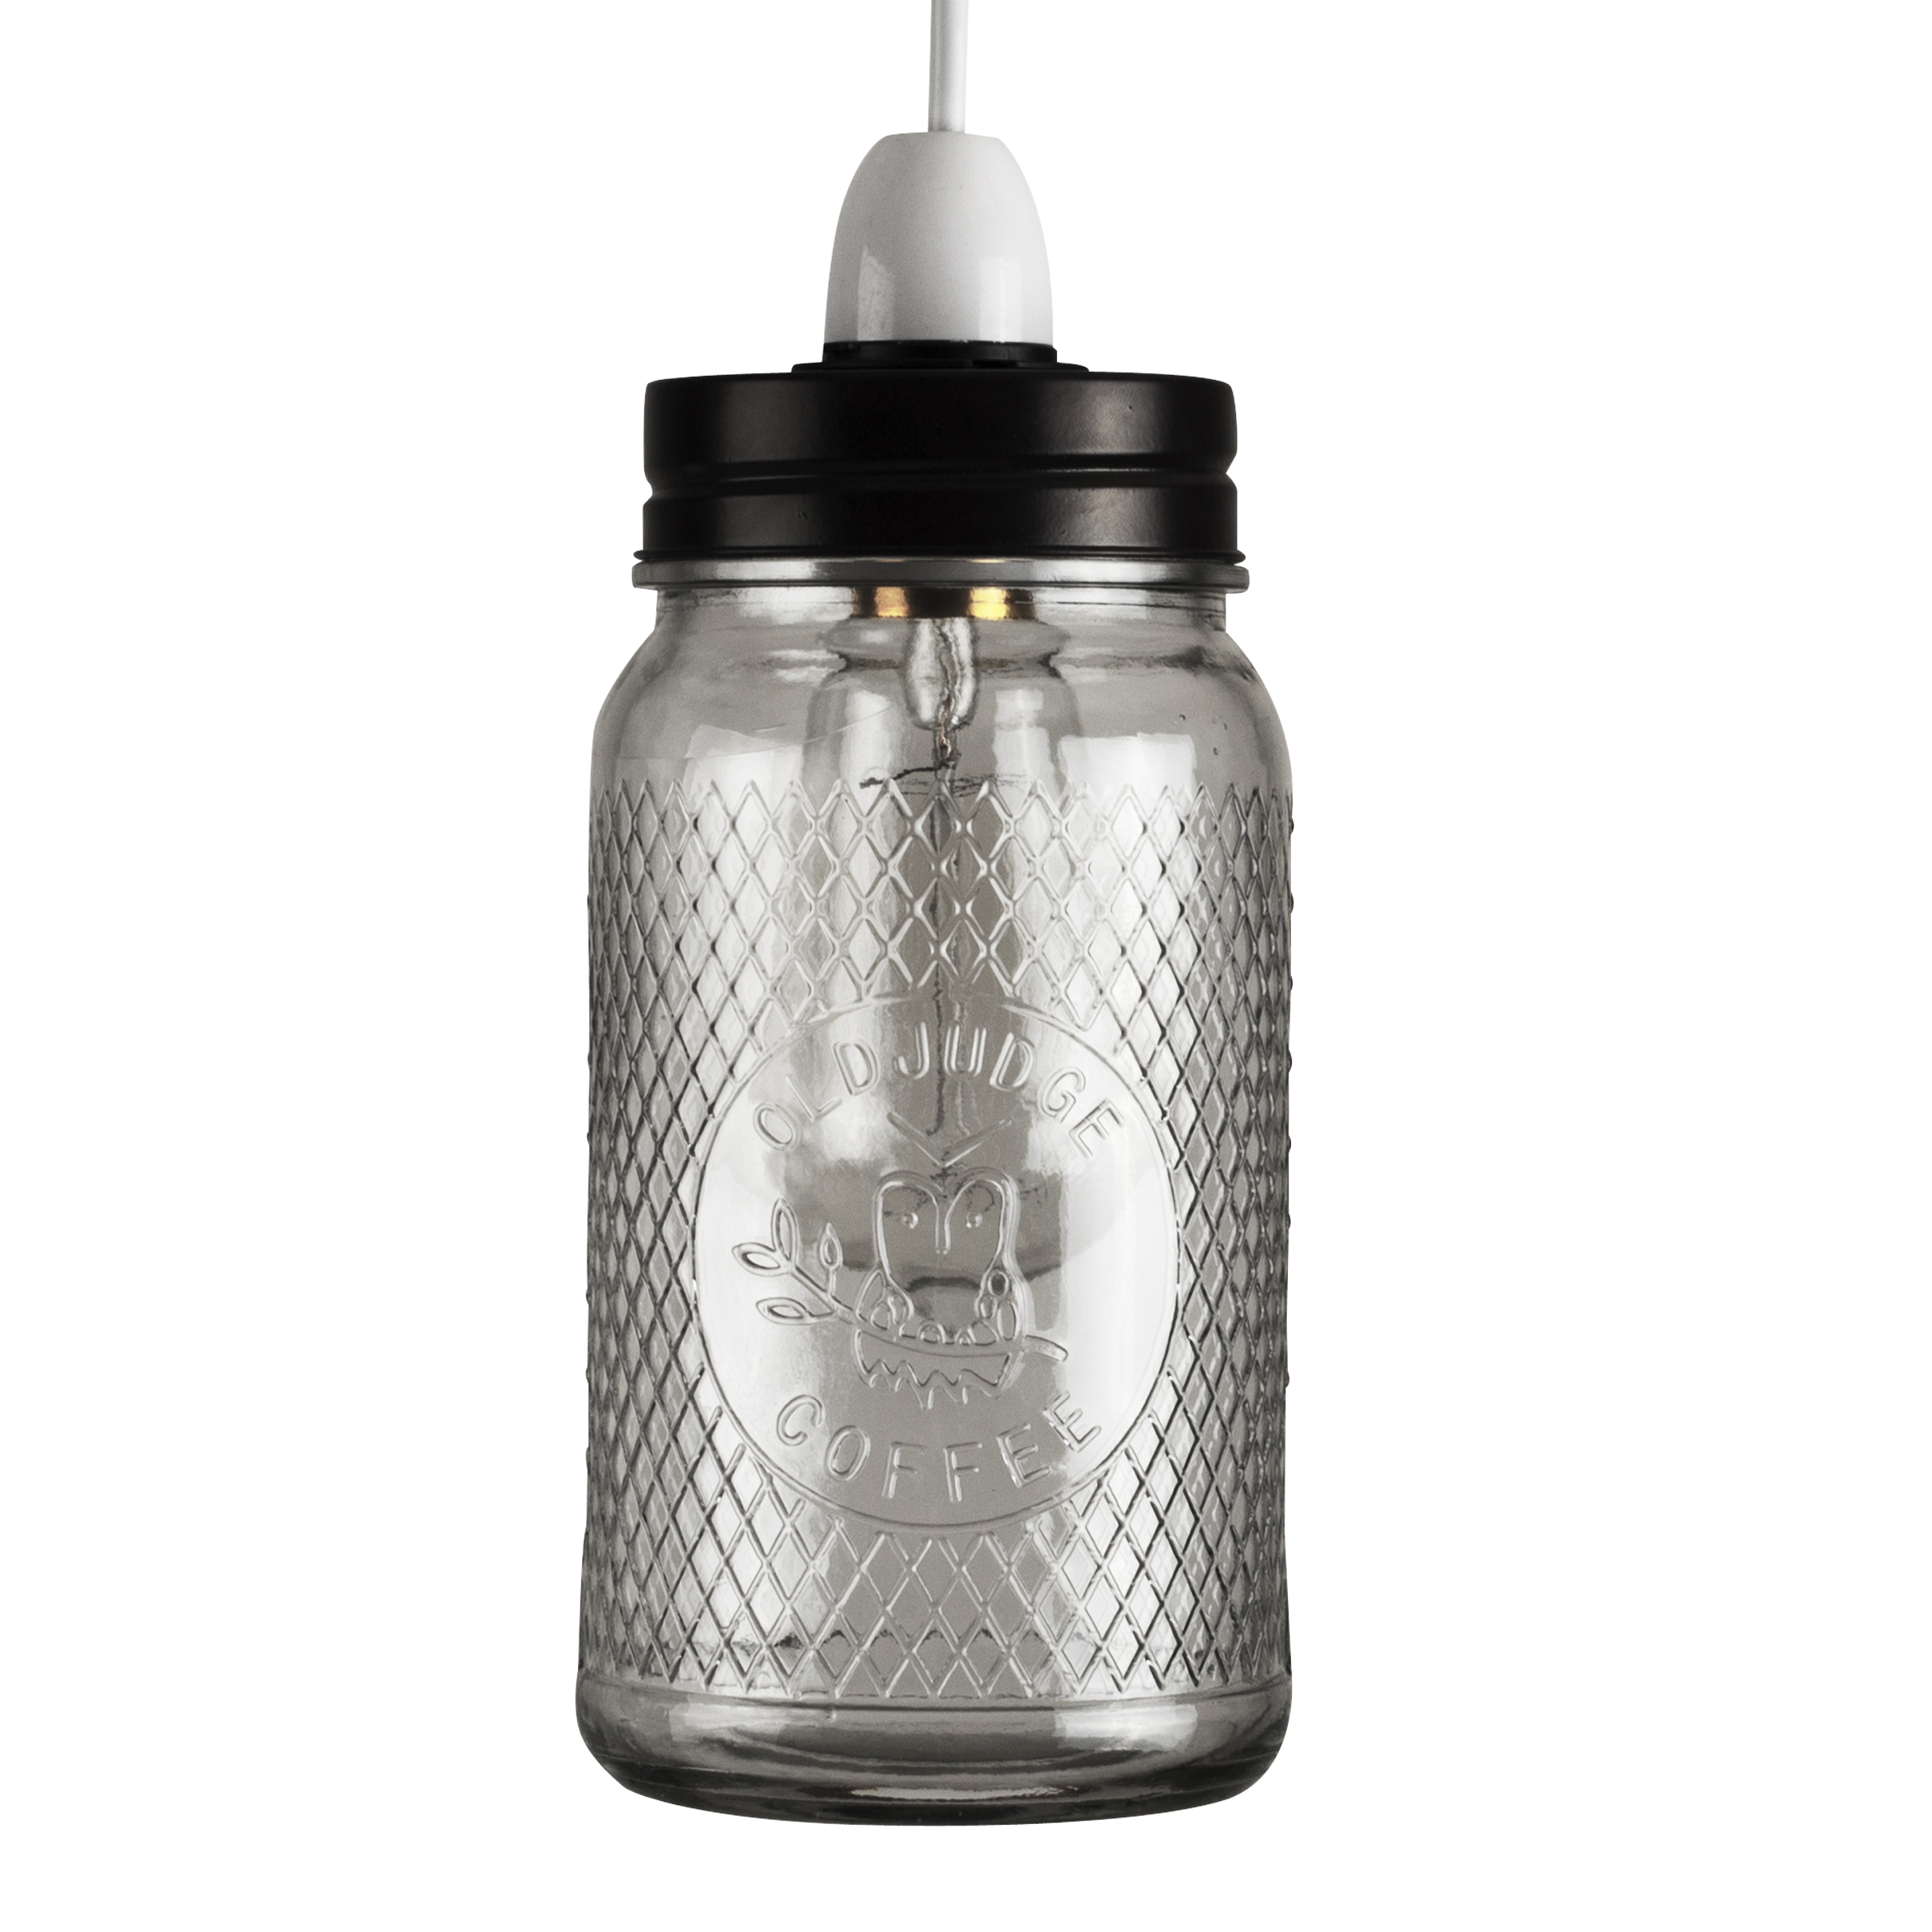 Quirky Industrail Style Glass Coffee Jar Ceiling Light